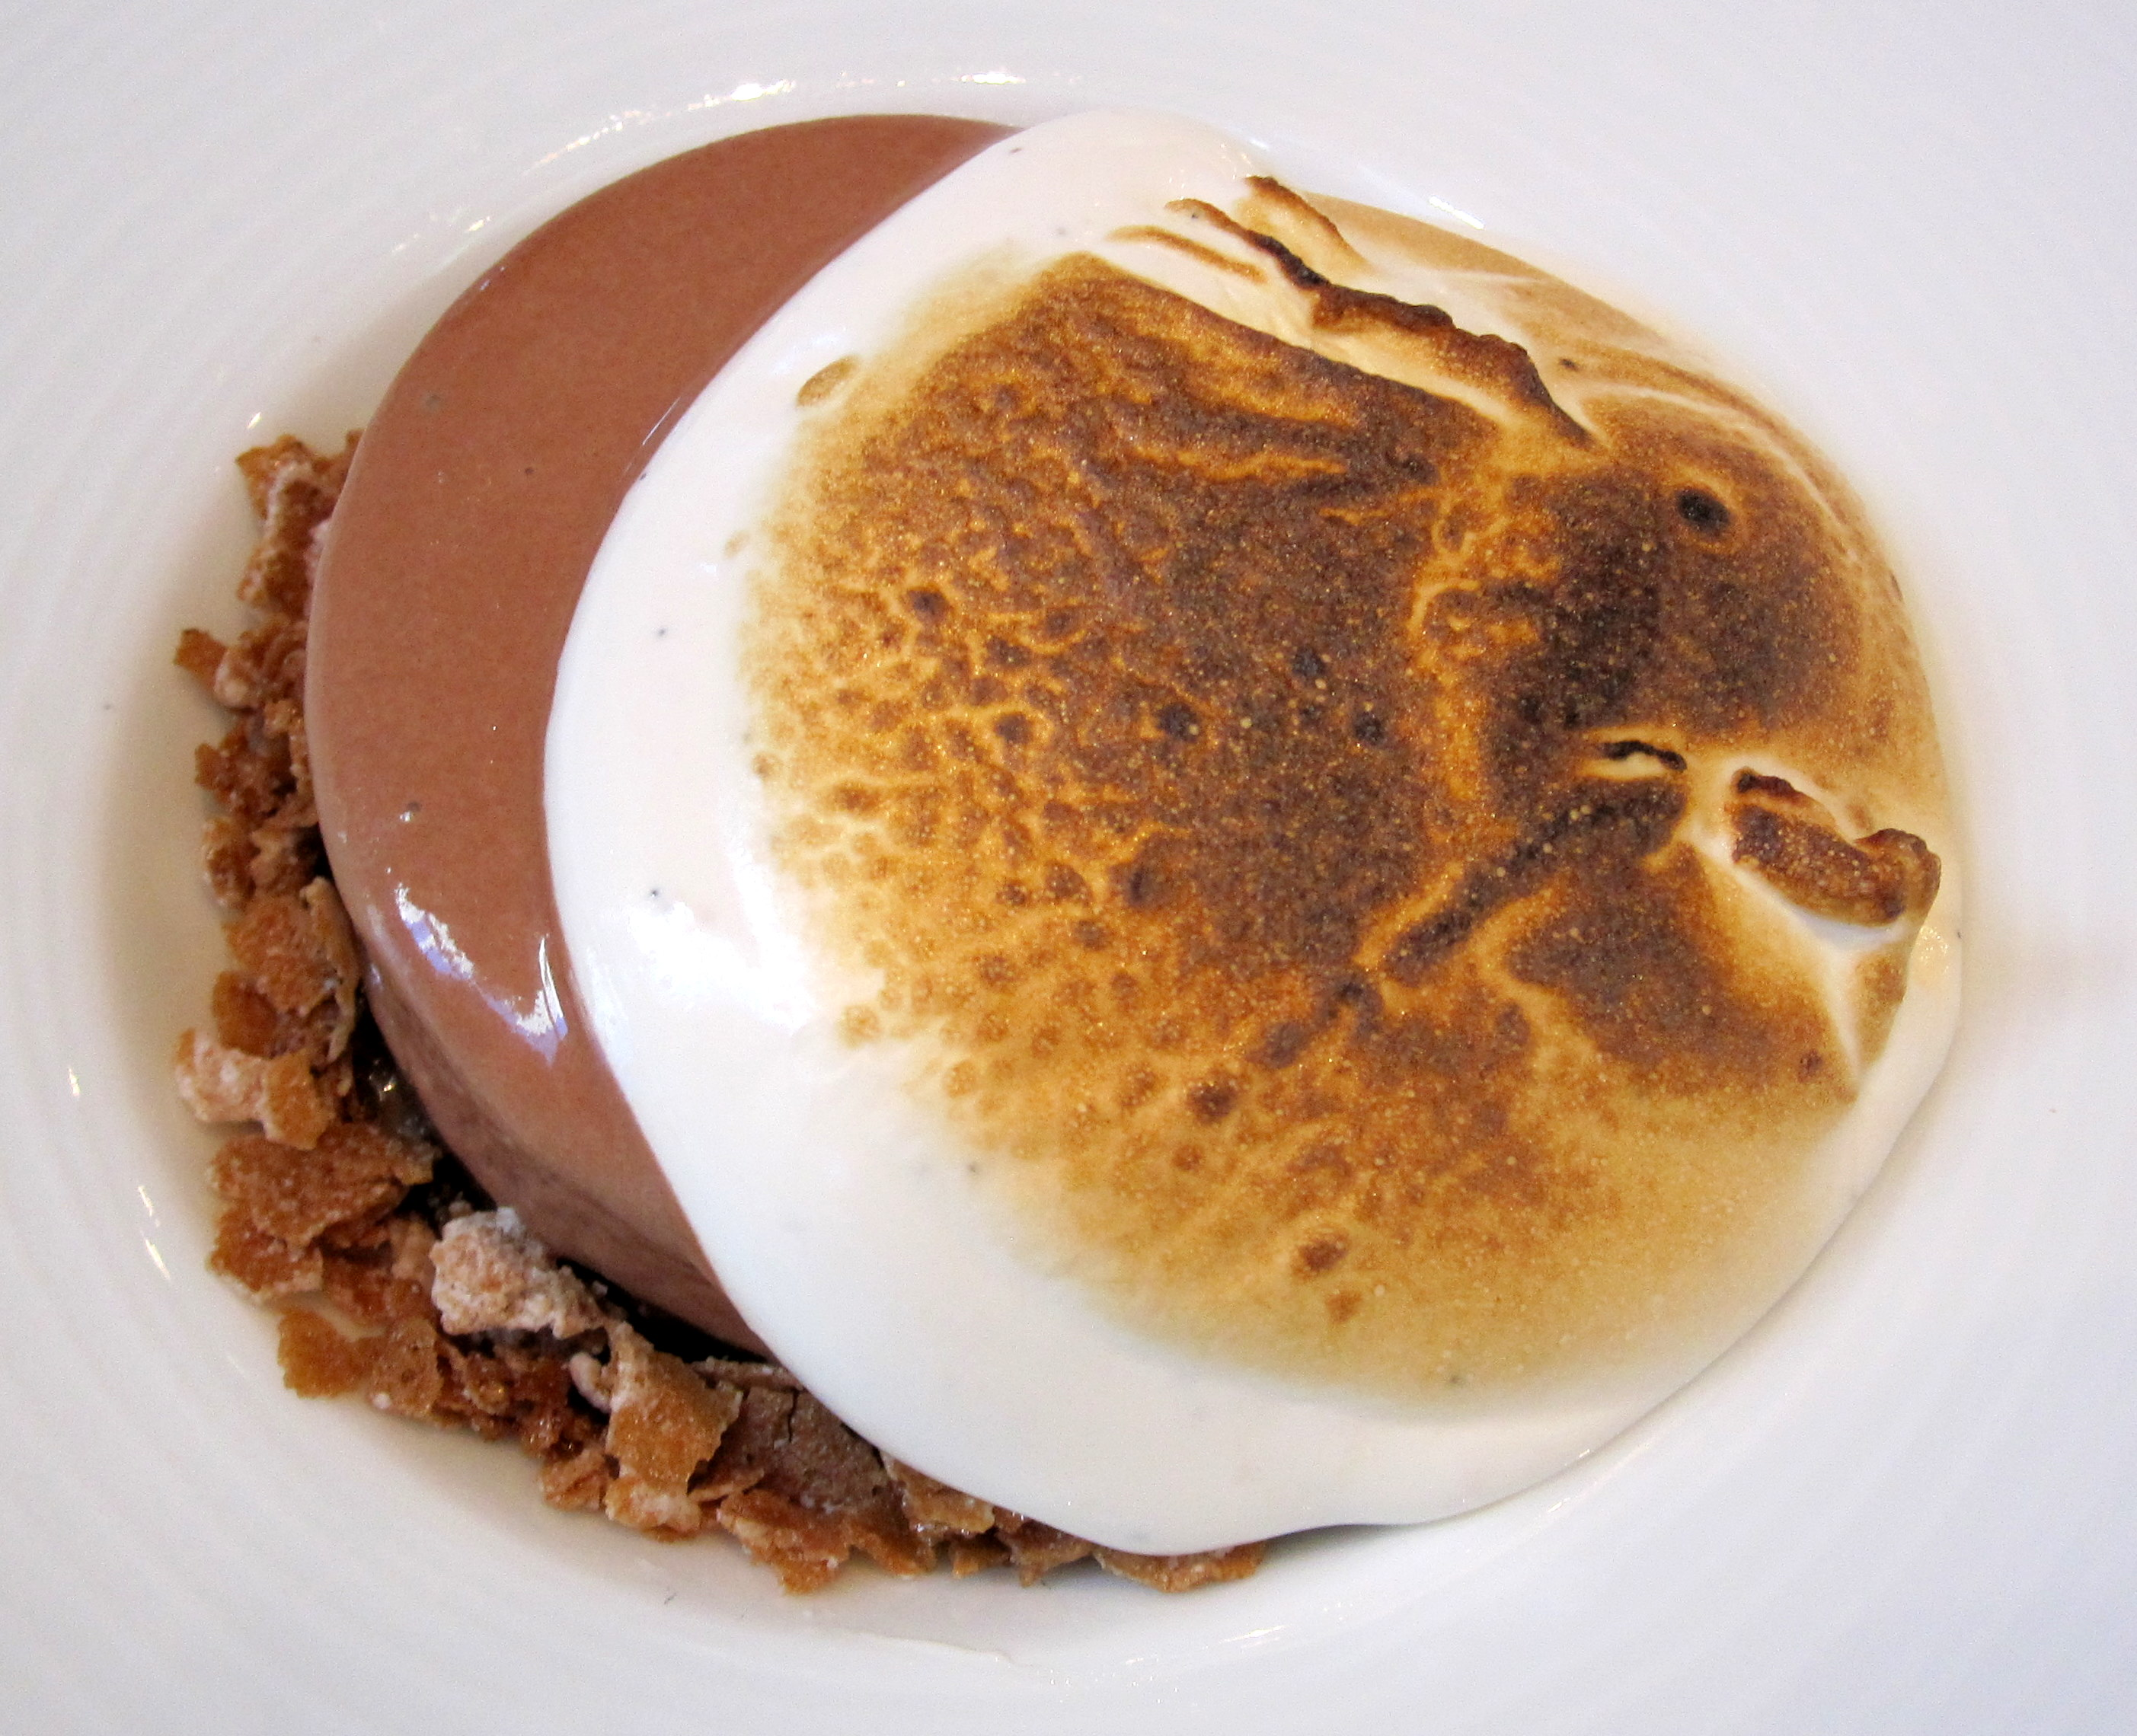 ... chocolate marquise with hazelnut, marshmallow and chocolate sorbet